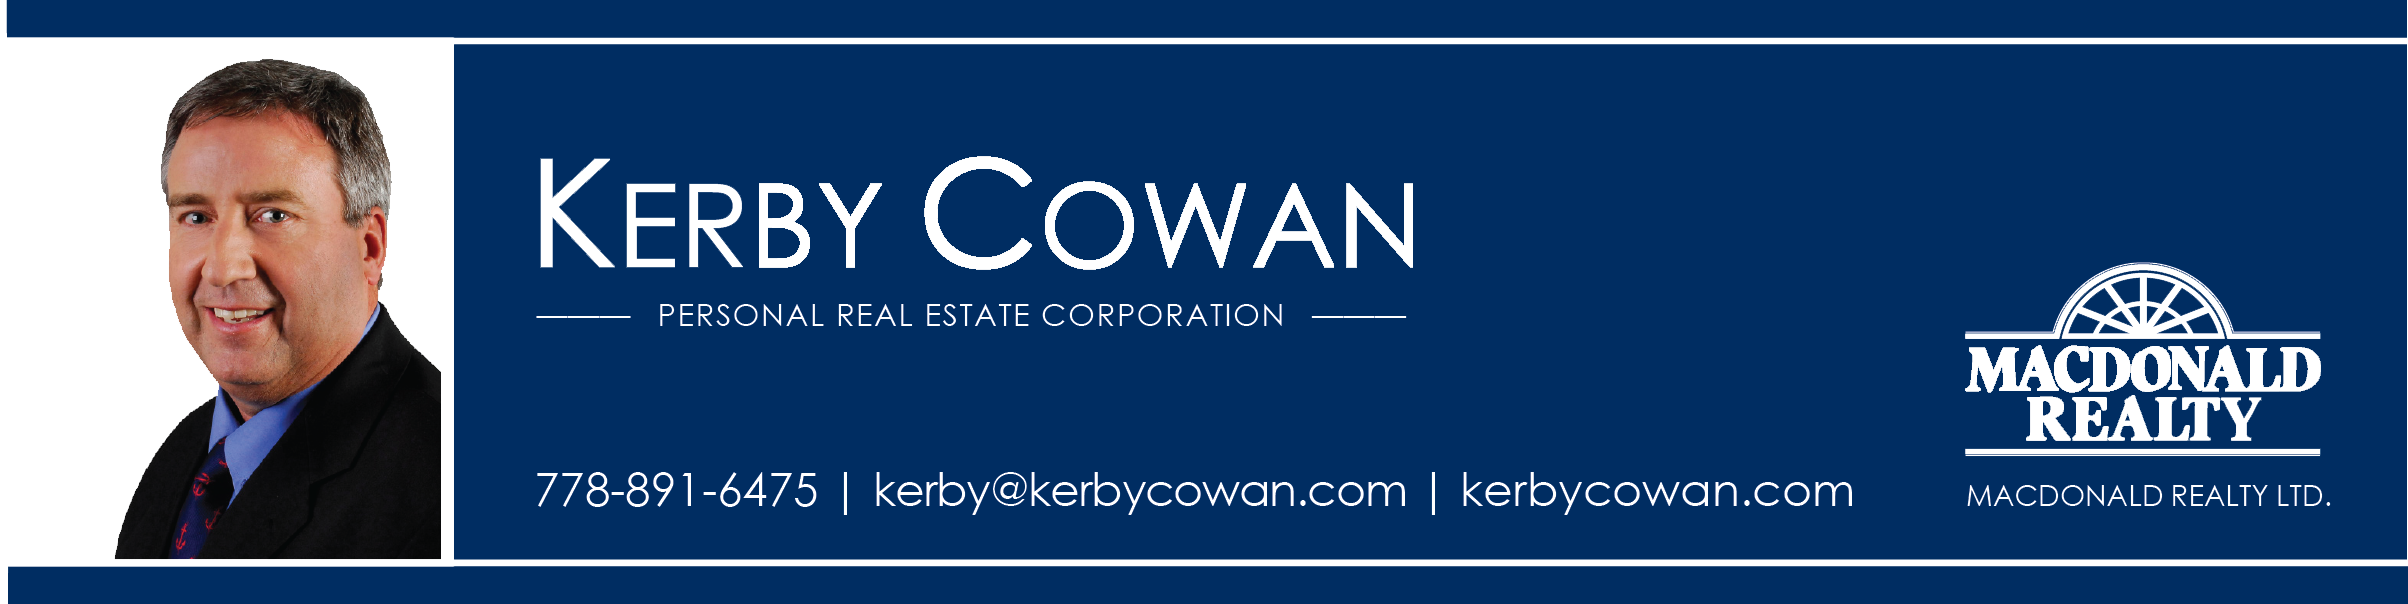 Kerby Cowan - Email Footer (2018) copy.png